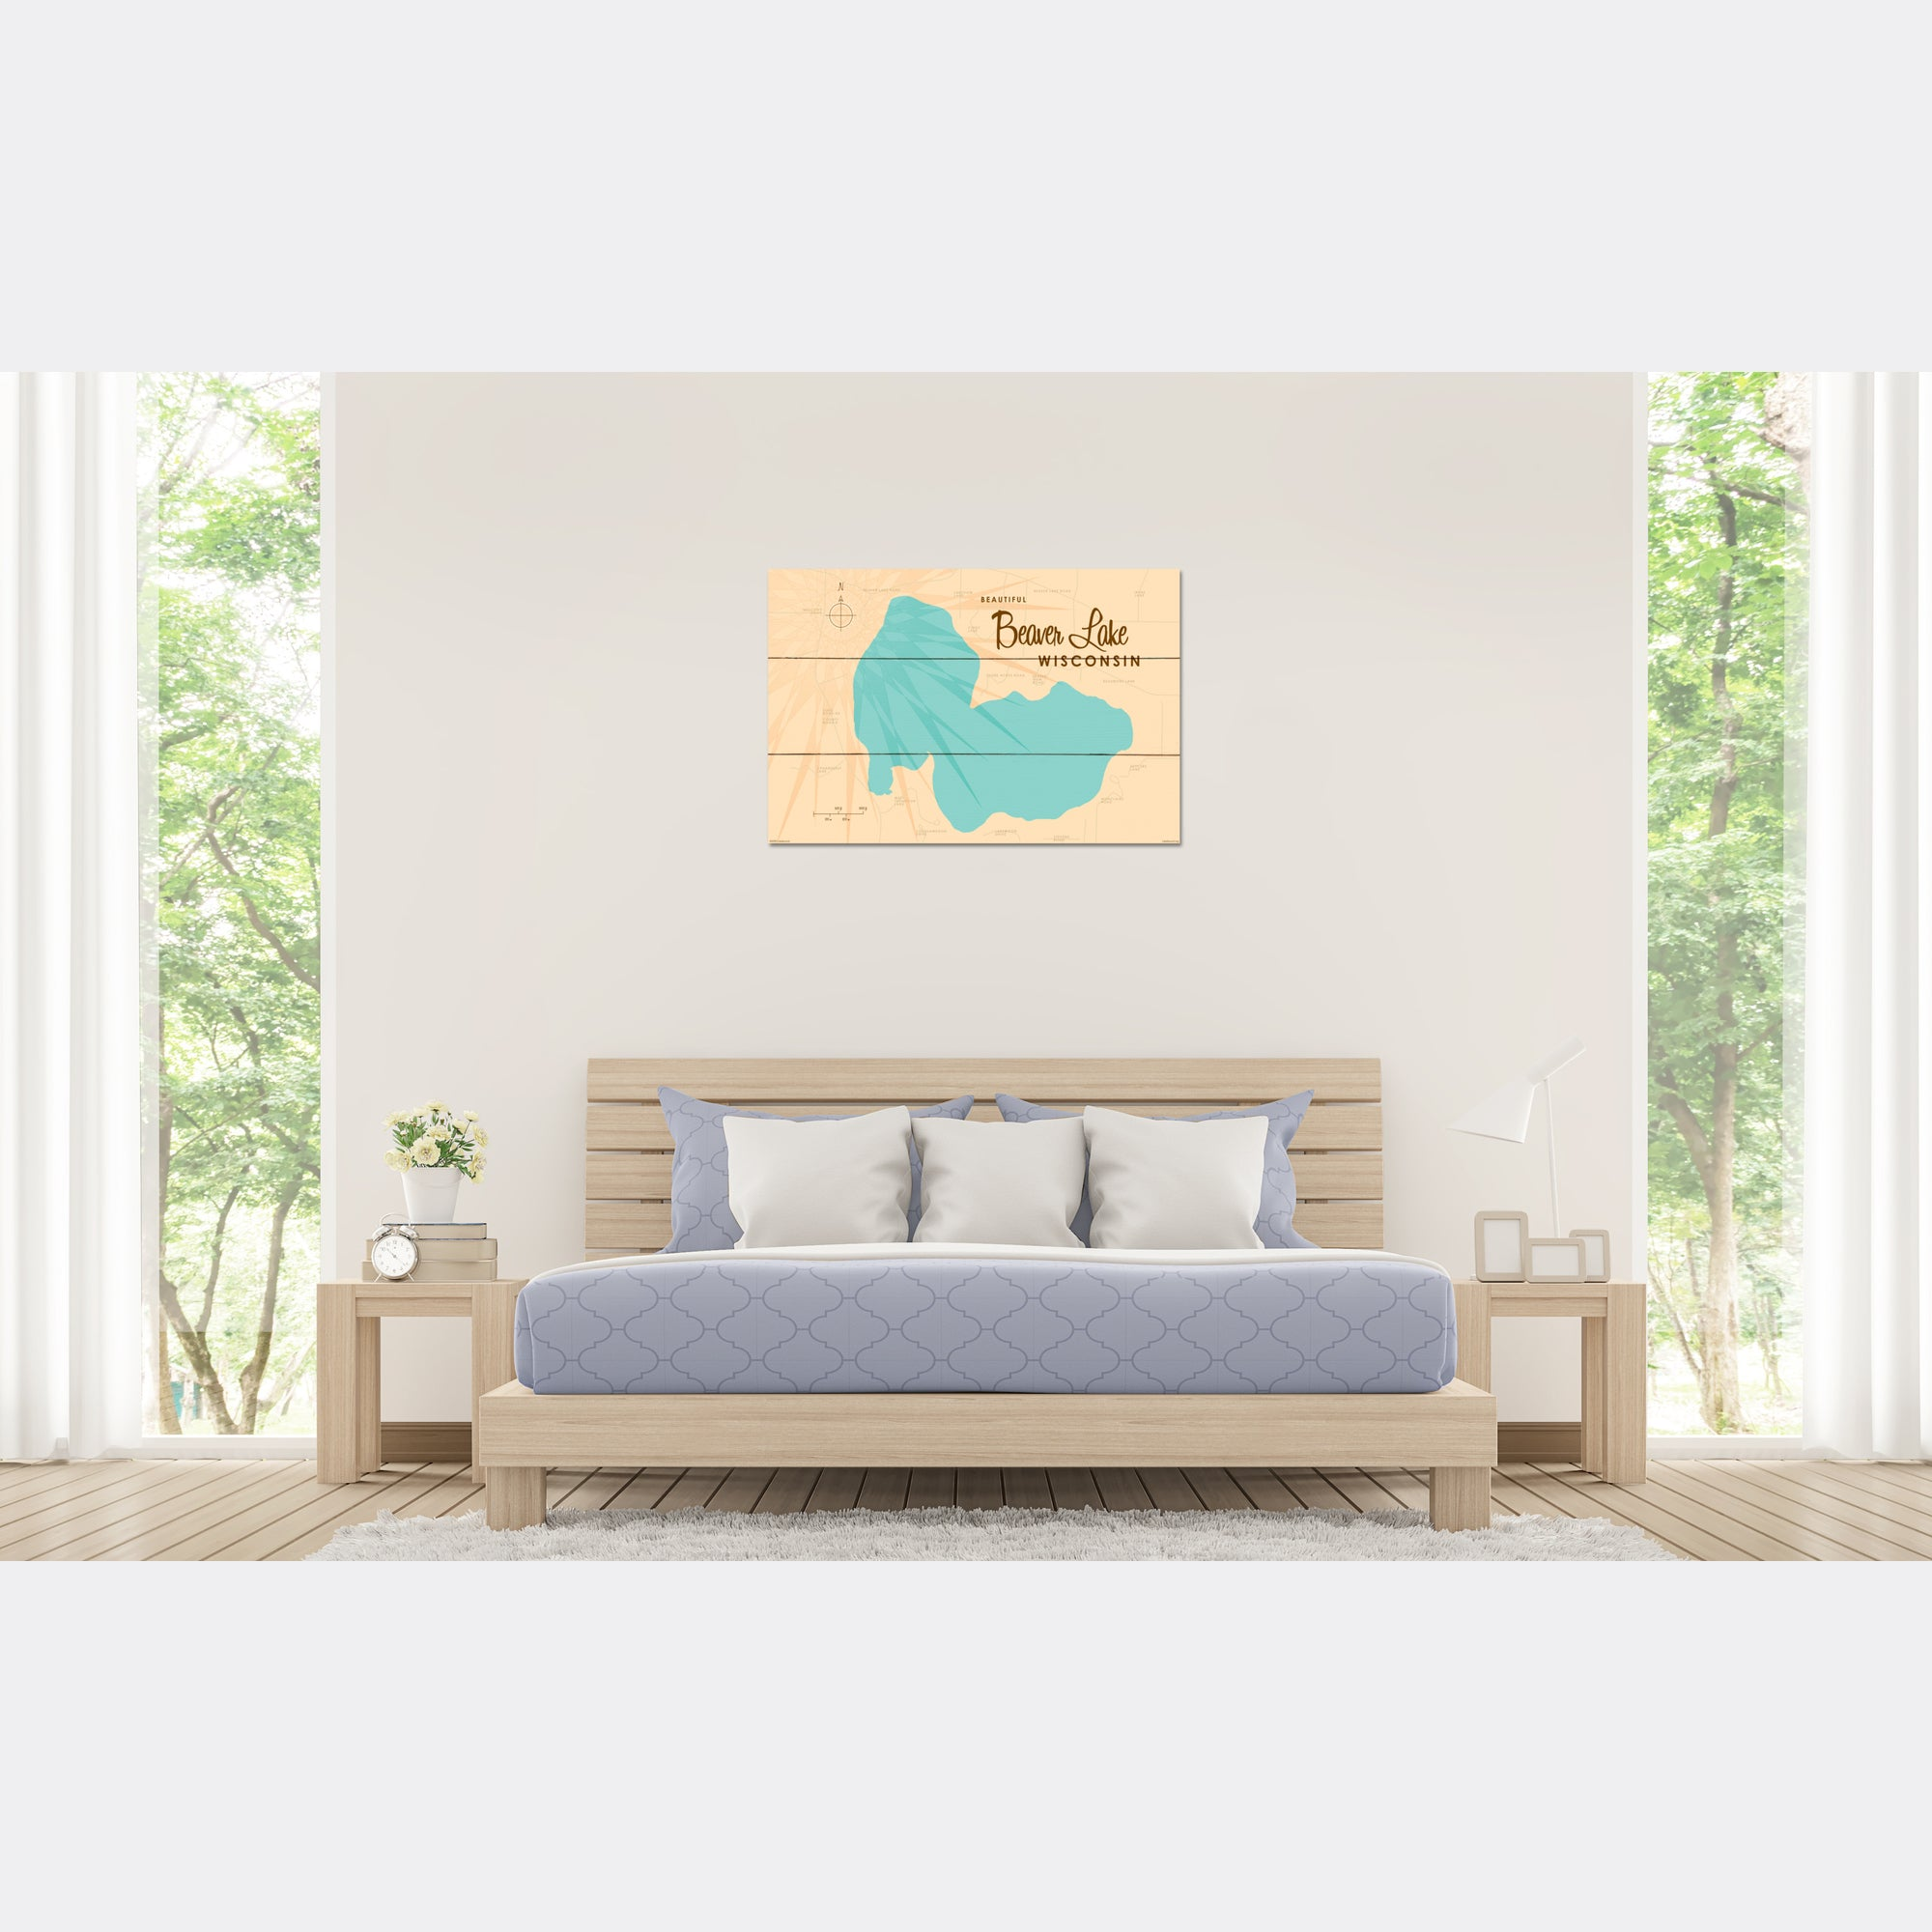 Beaver Lake Wisconsin, Wood Sign Map Art